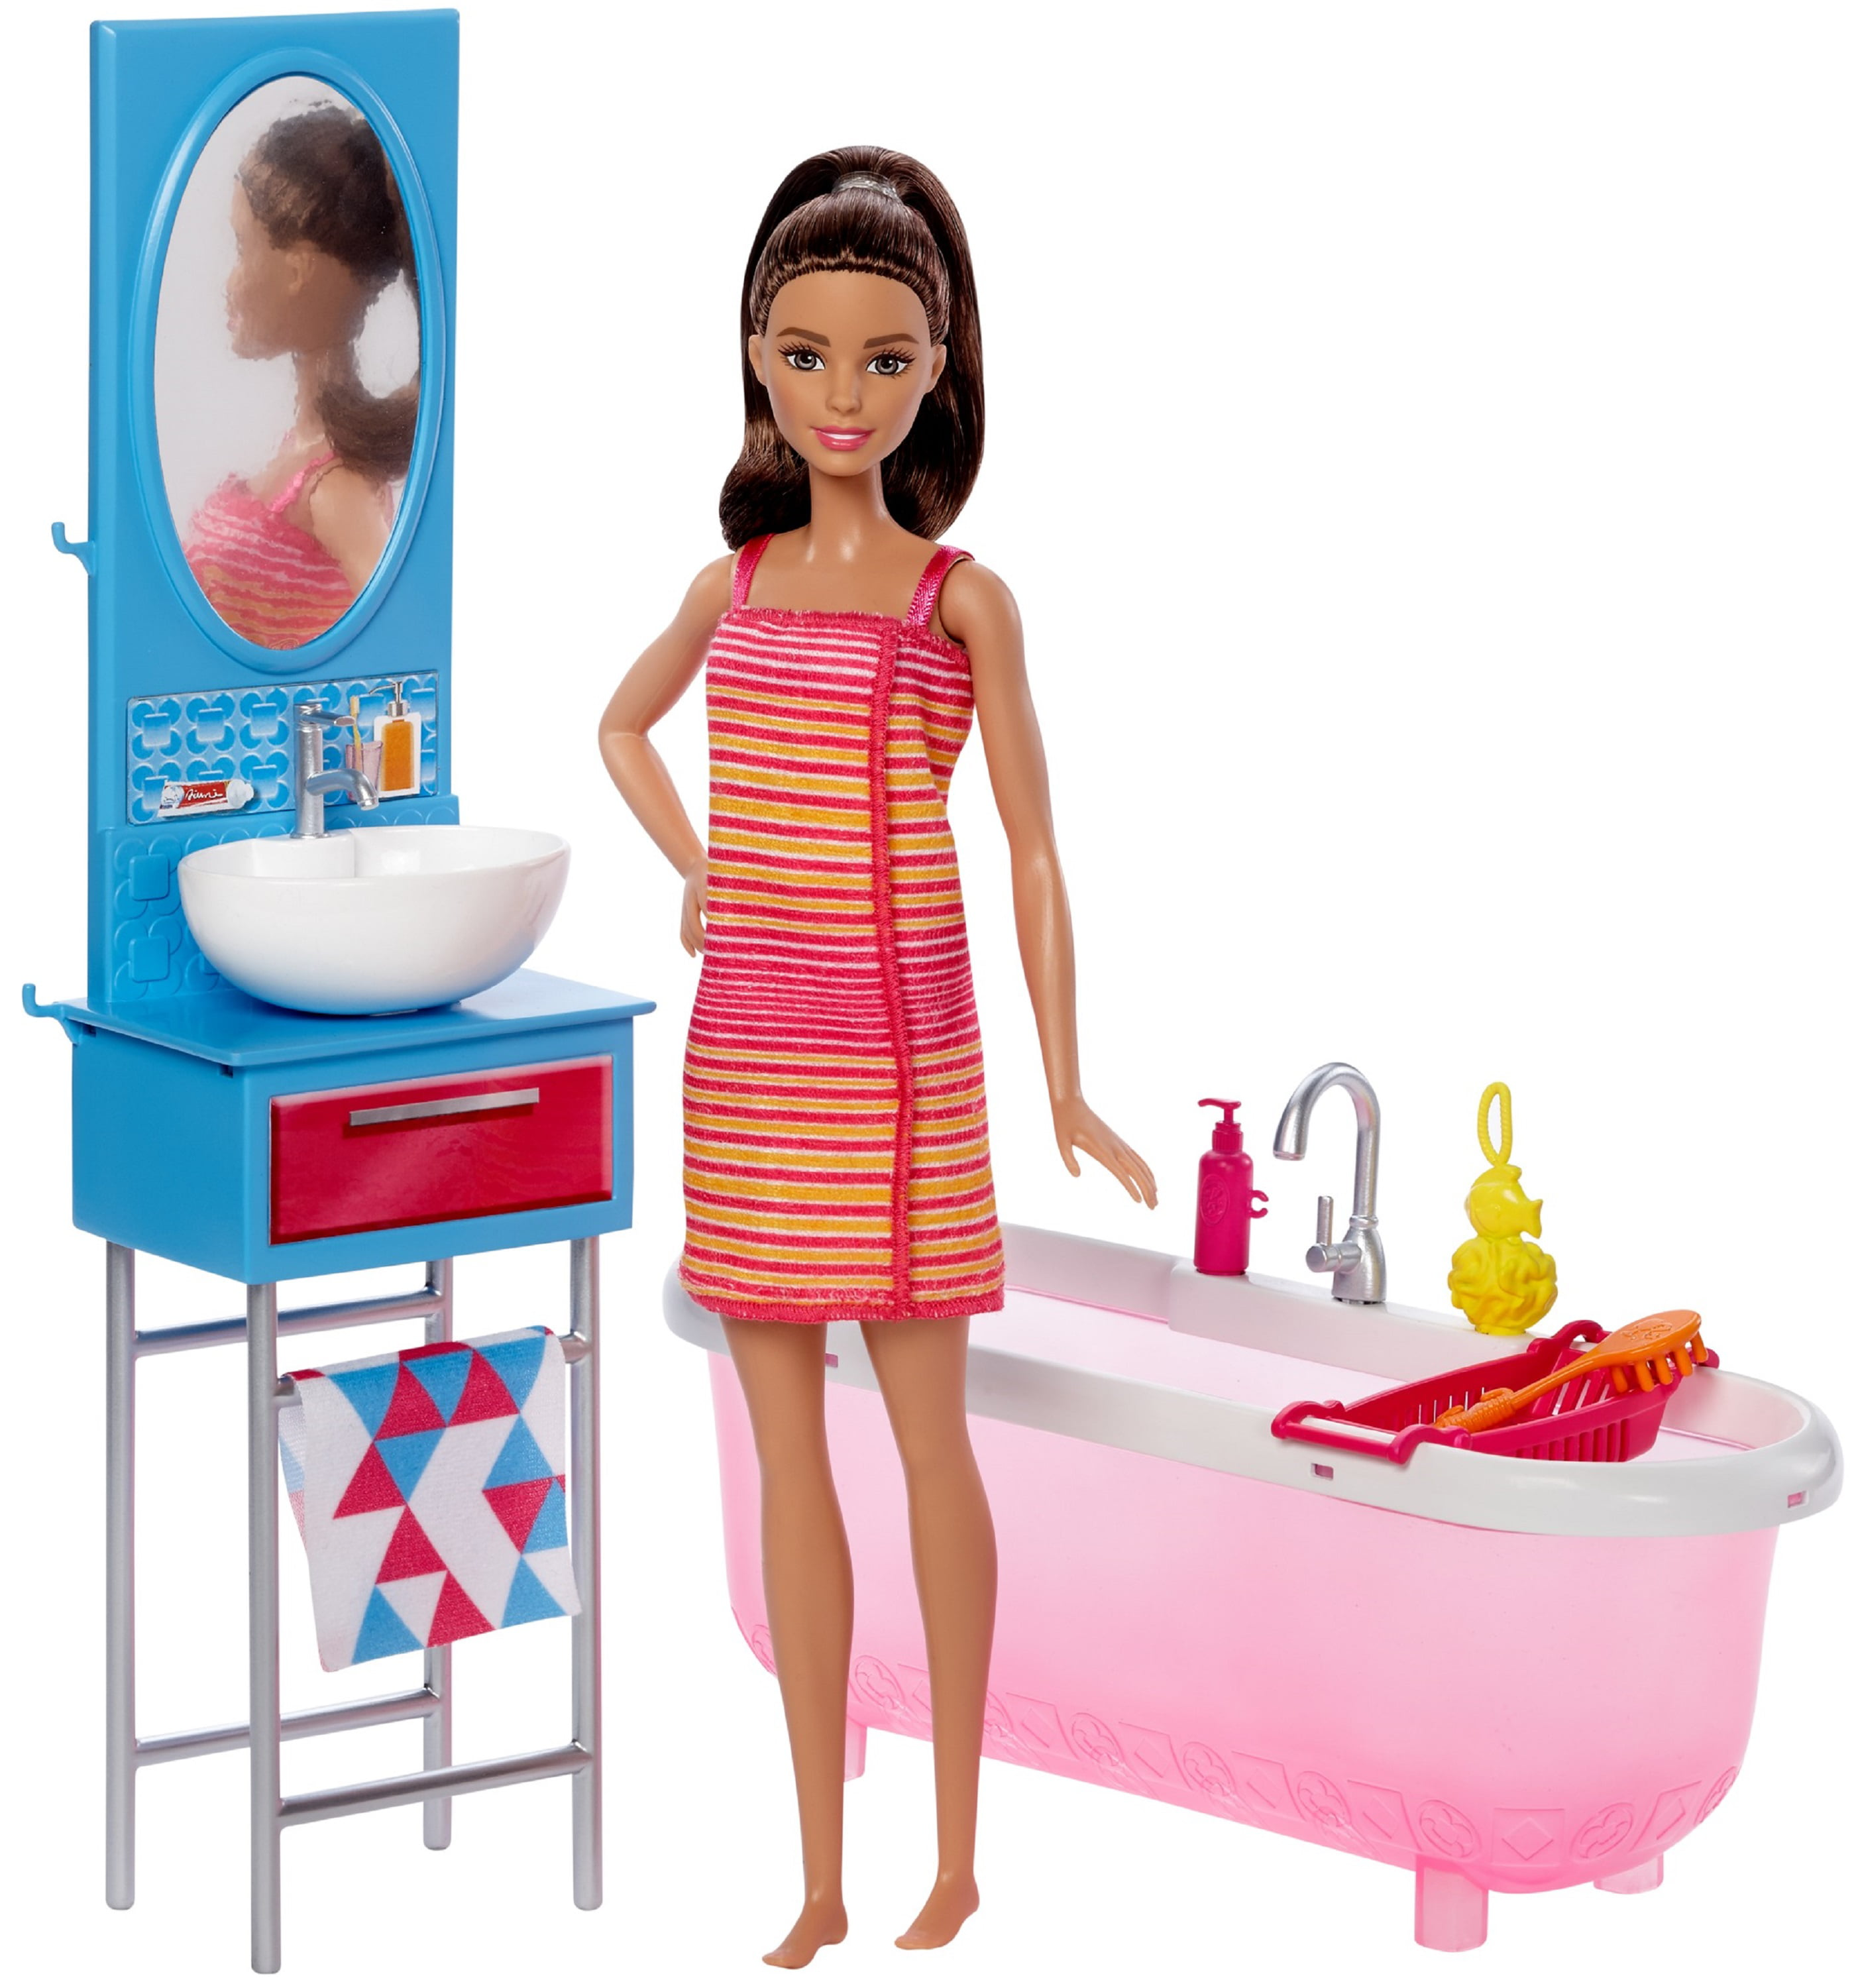 Barbie Doll & Bathroom Furniture by Mattel